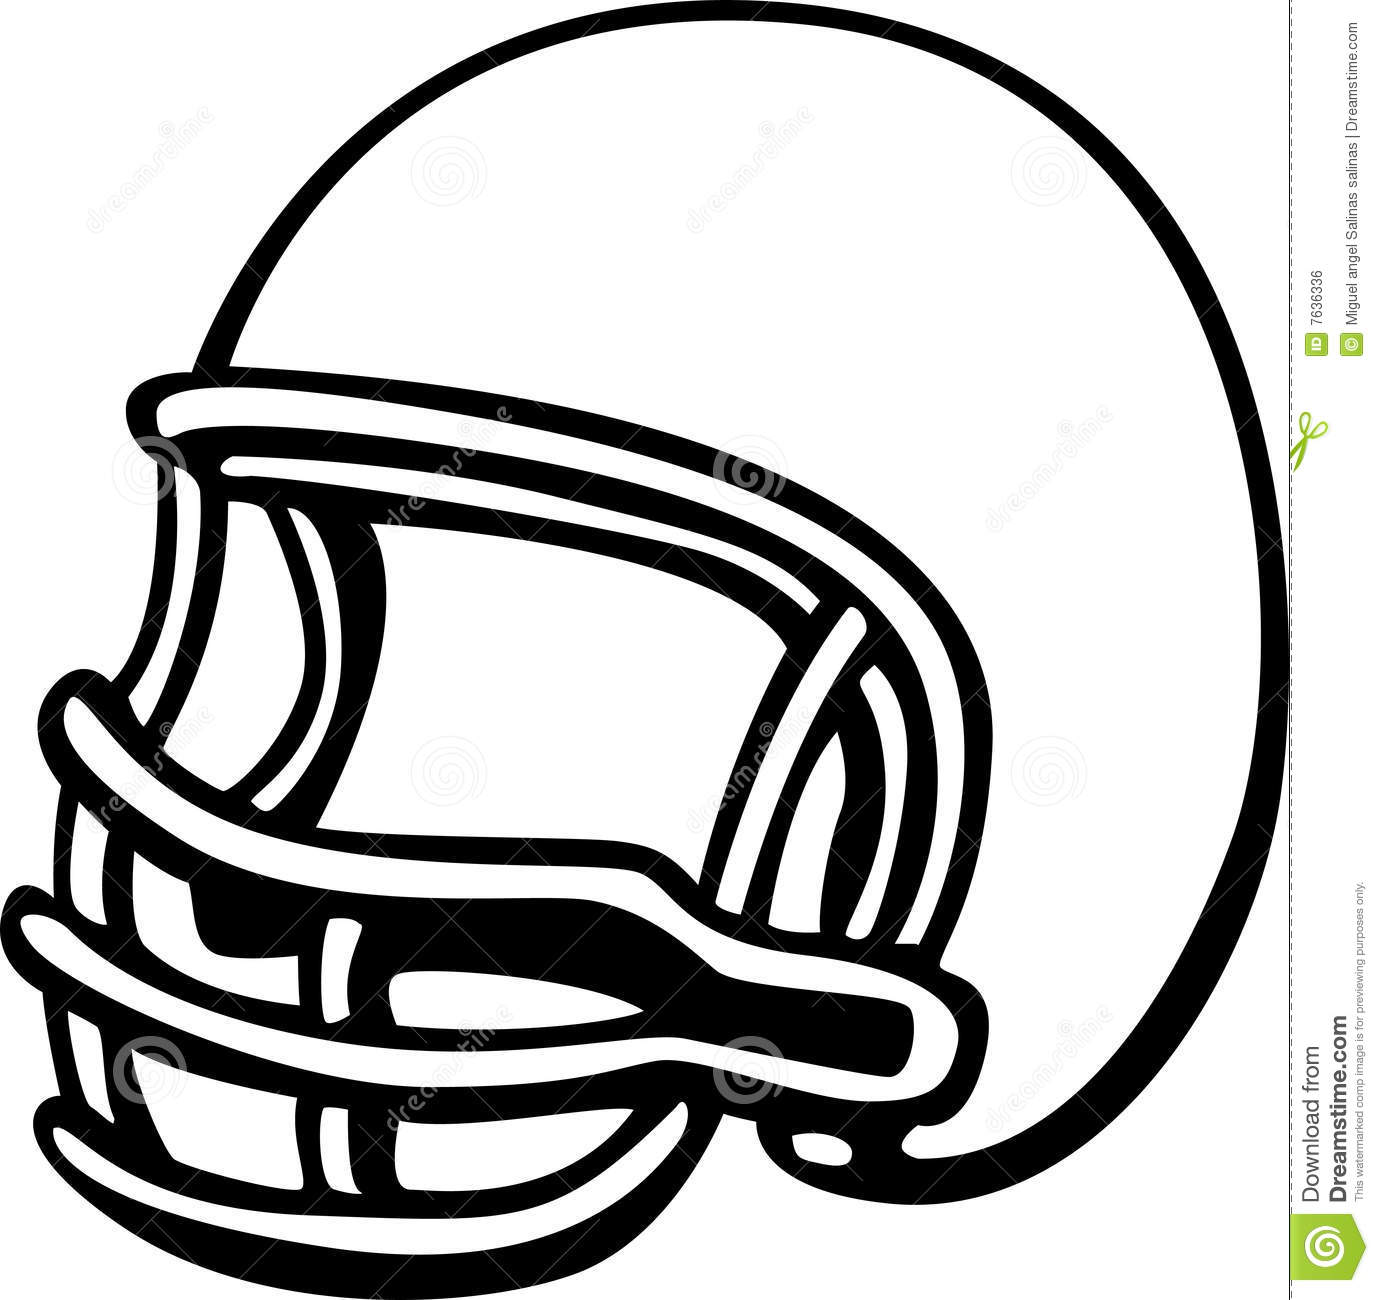 1379x1300 Football Helmet Clip Art Black And White Many Interesting Cliparts